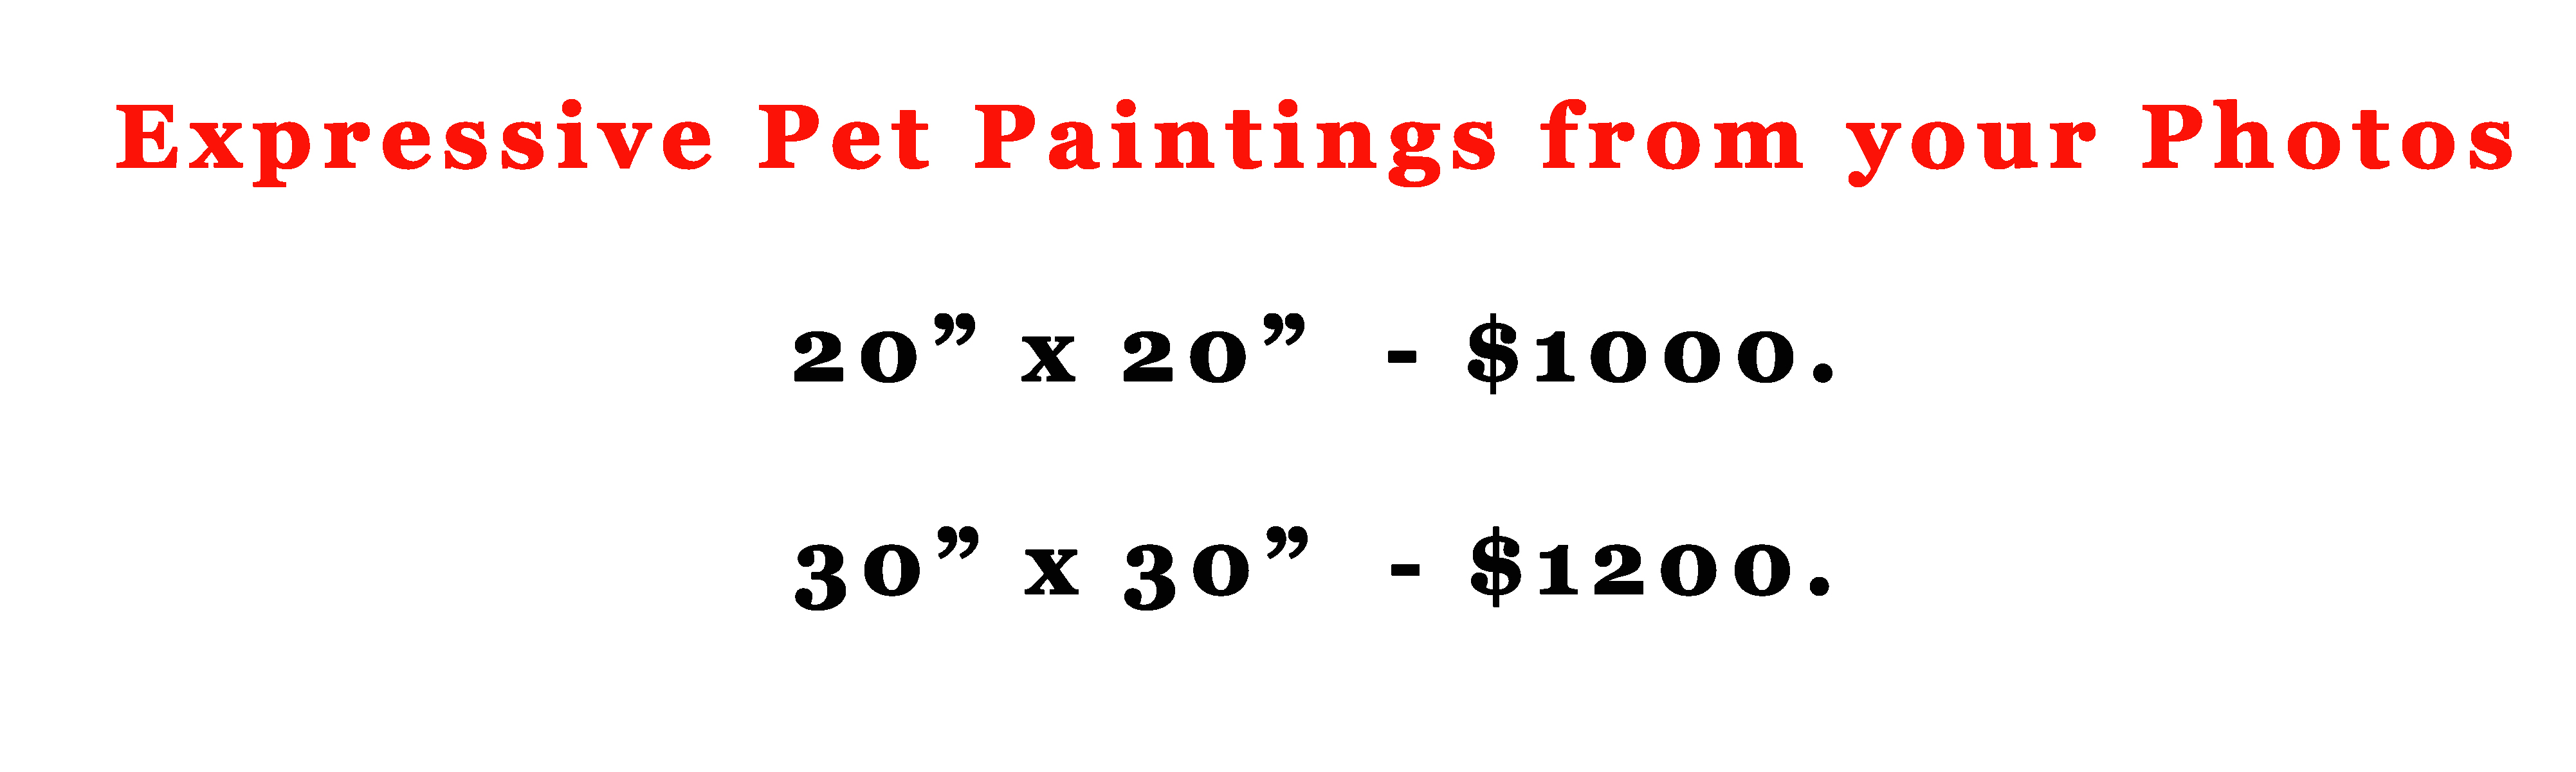 expressive-painting-prices